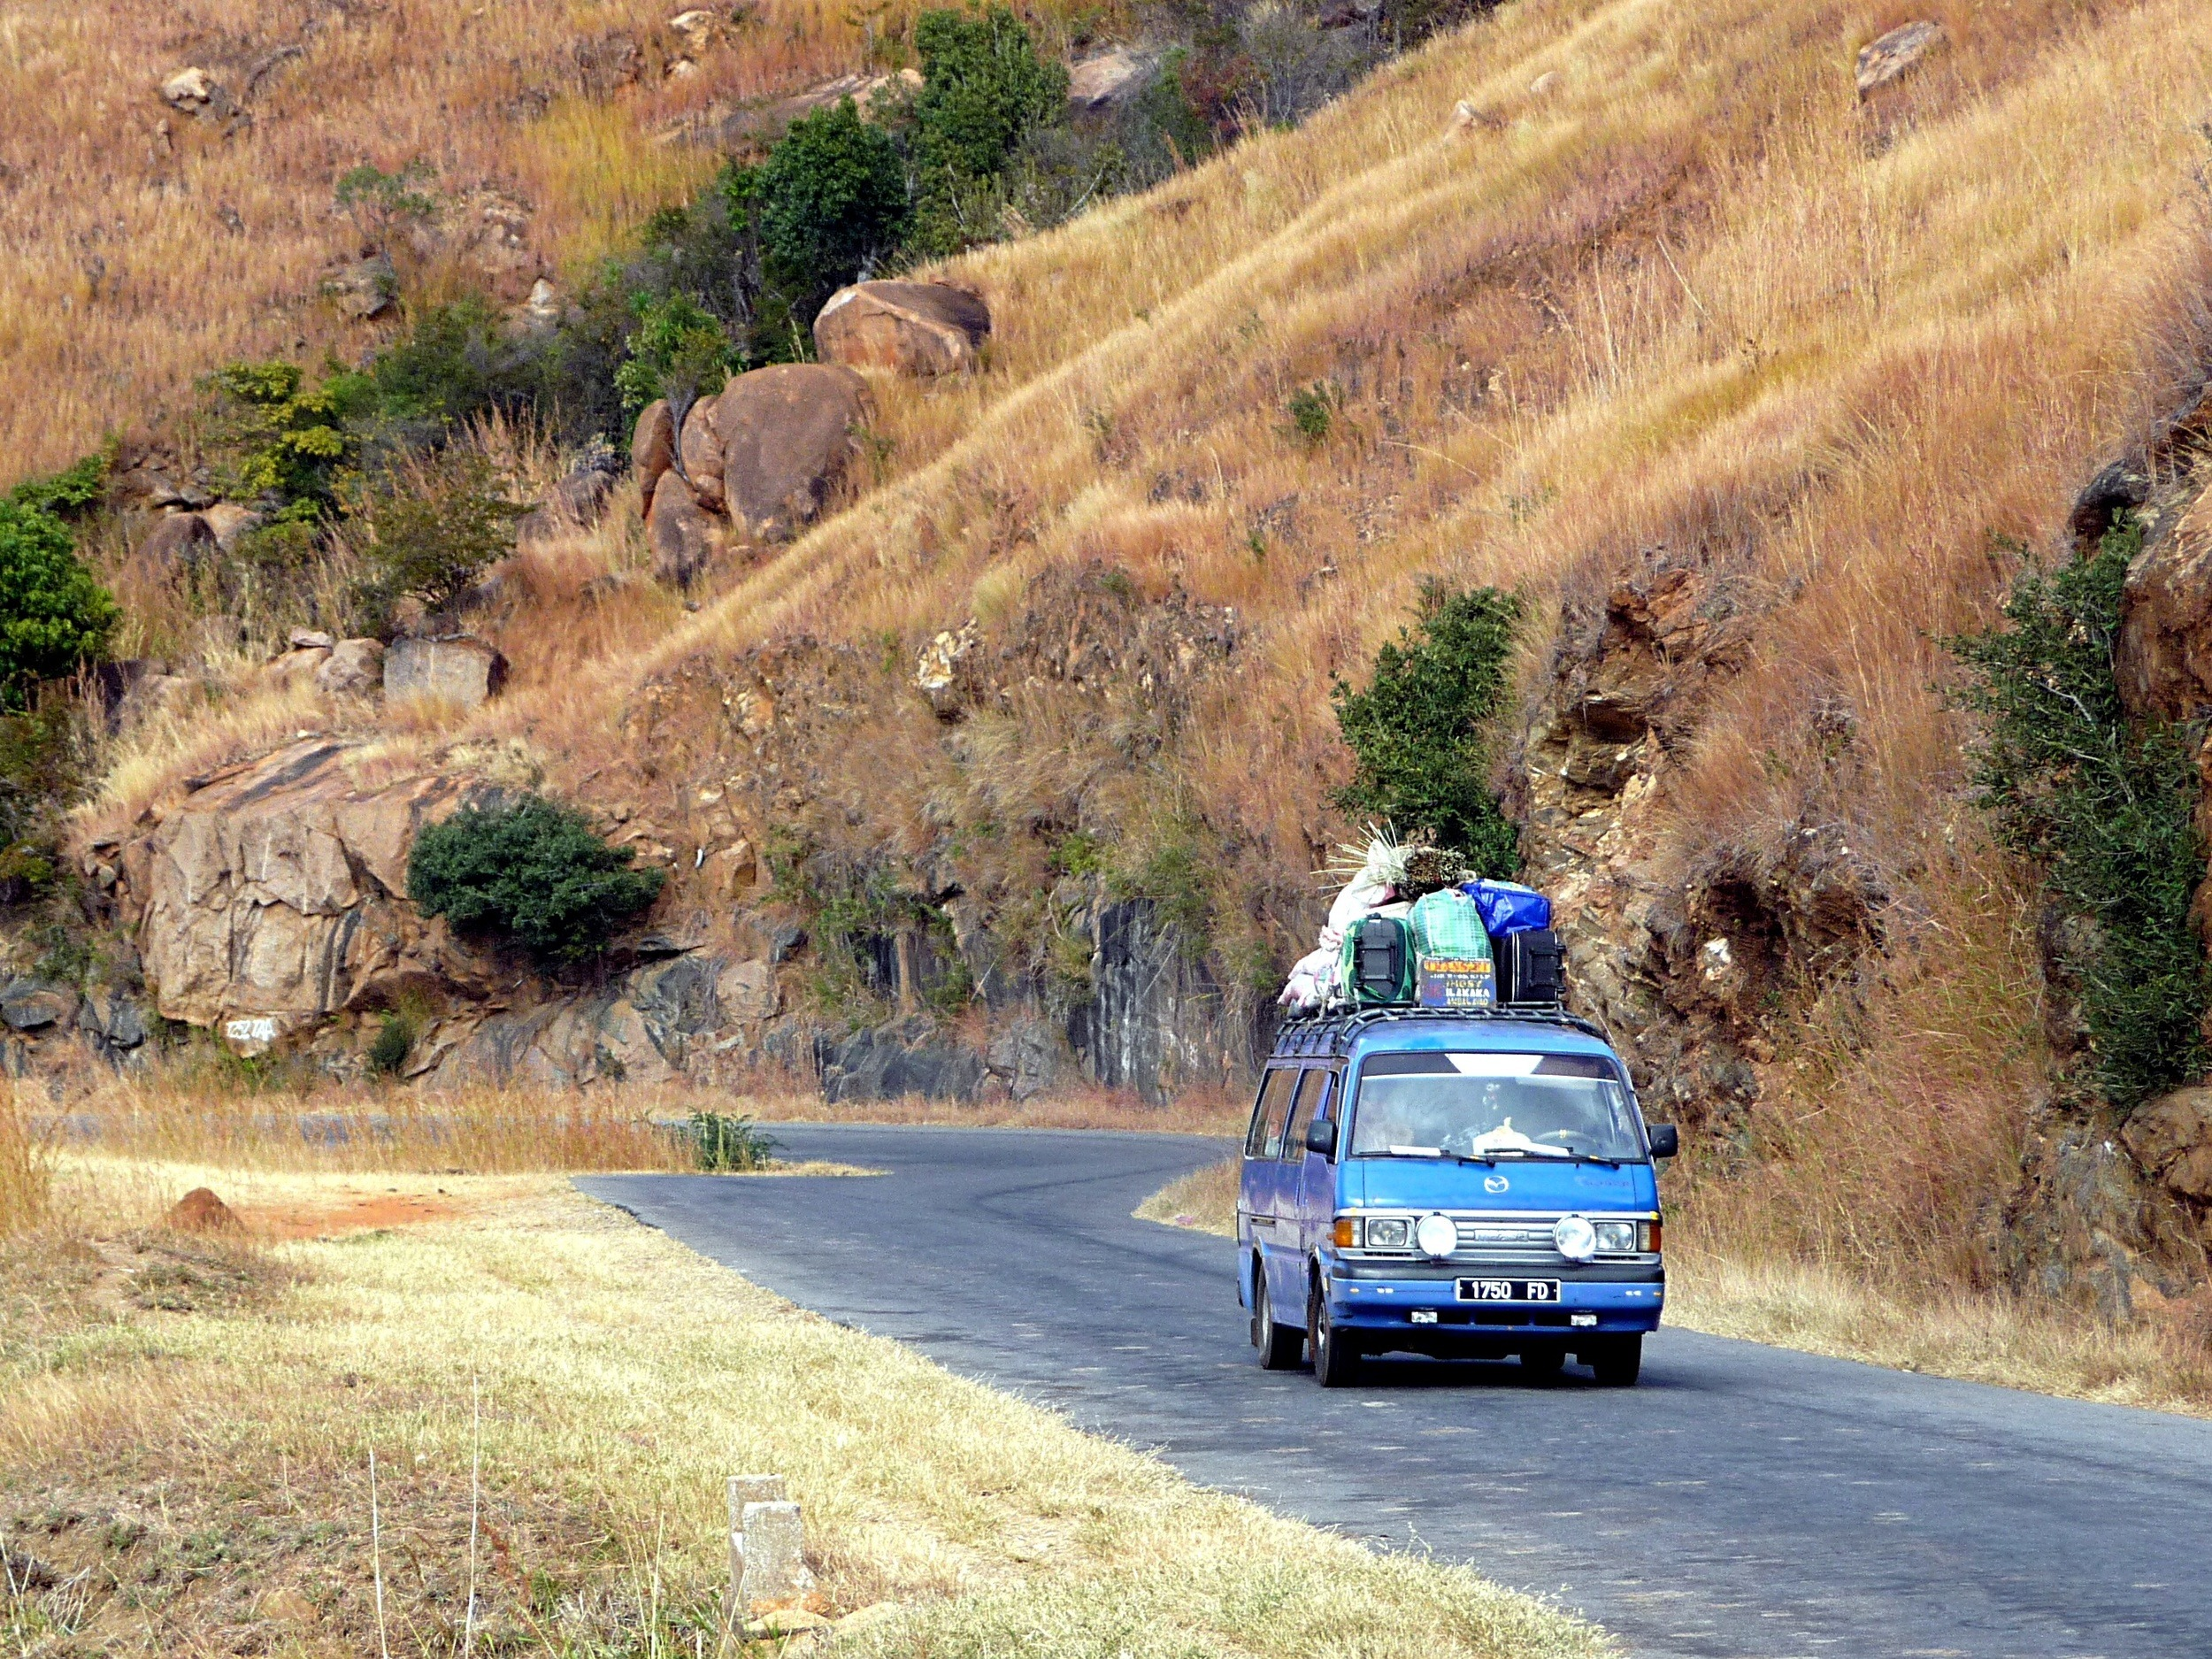 Is it safe to drive in Madagascar?